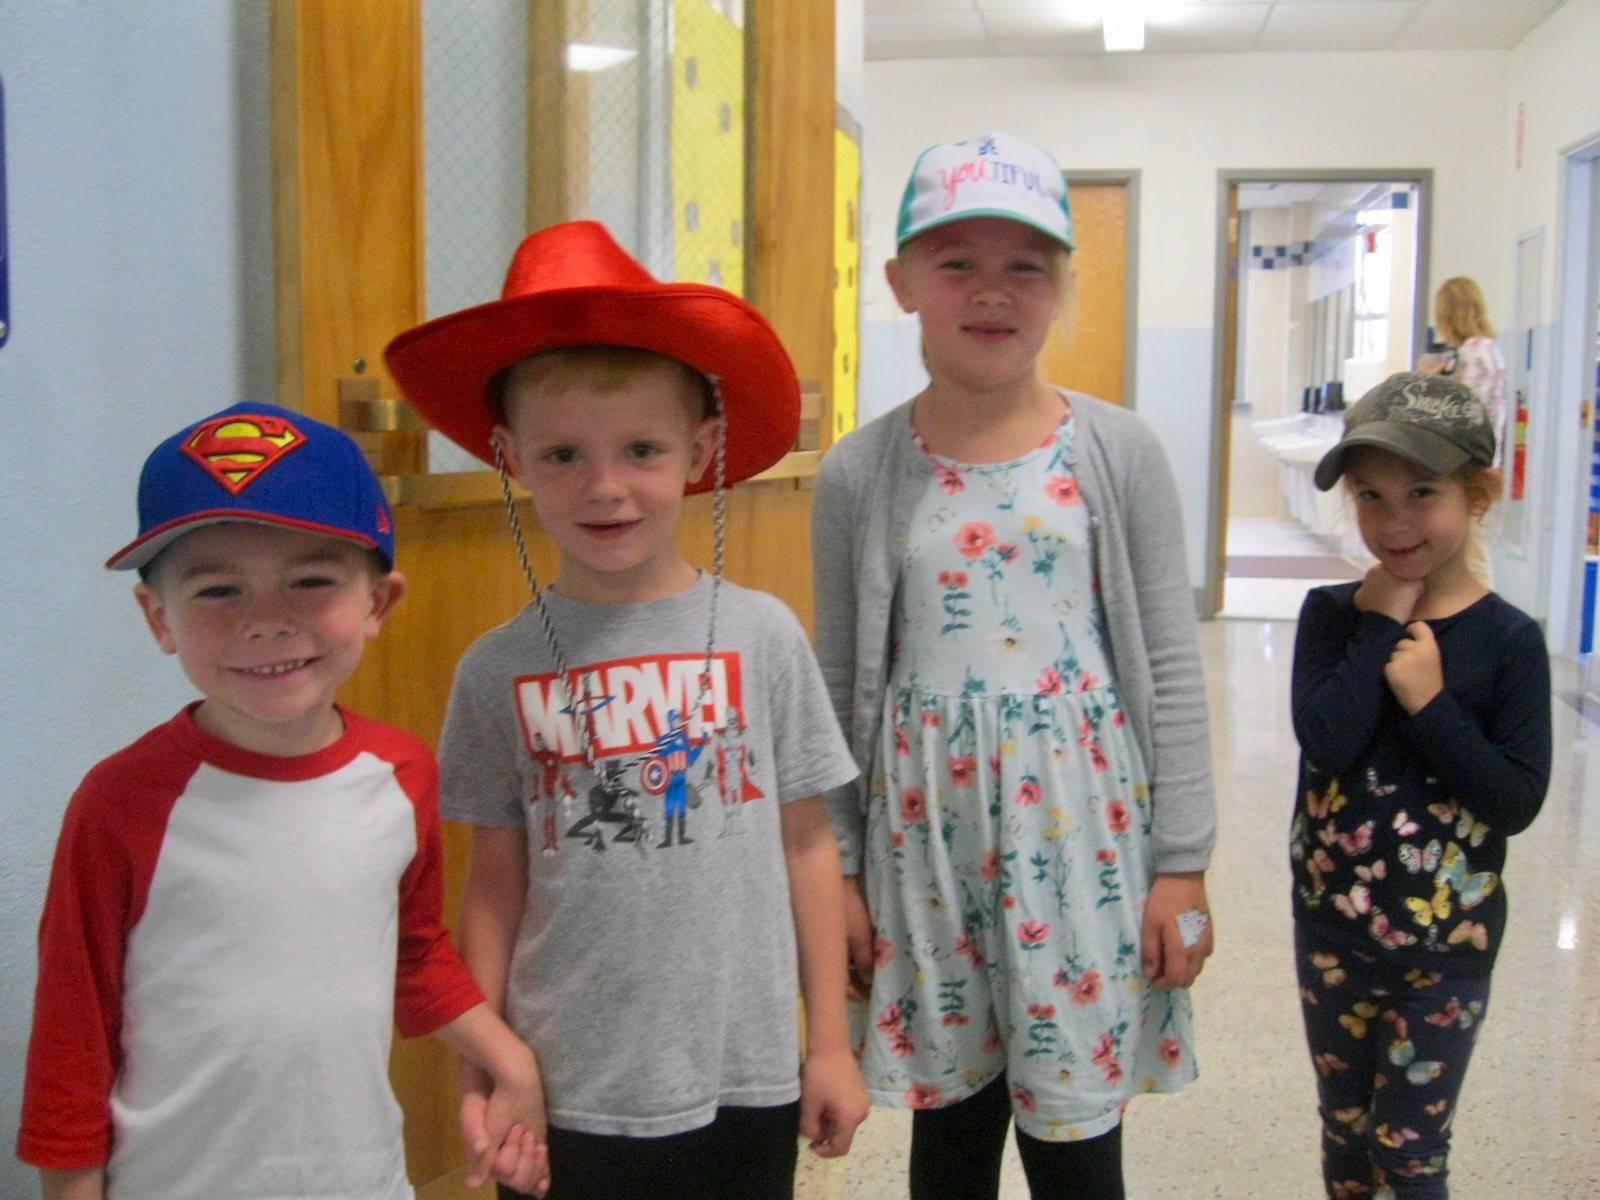 4 students and their cool hats.